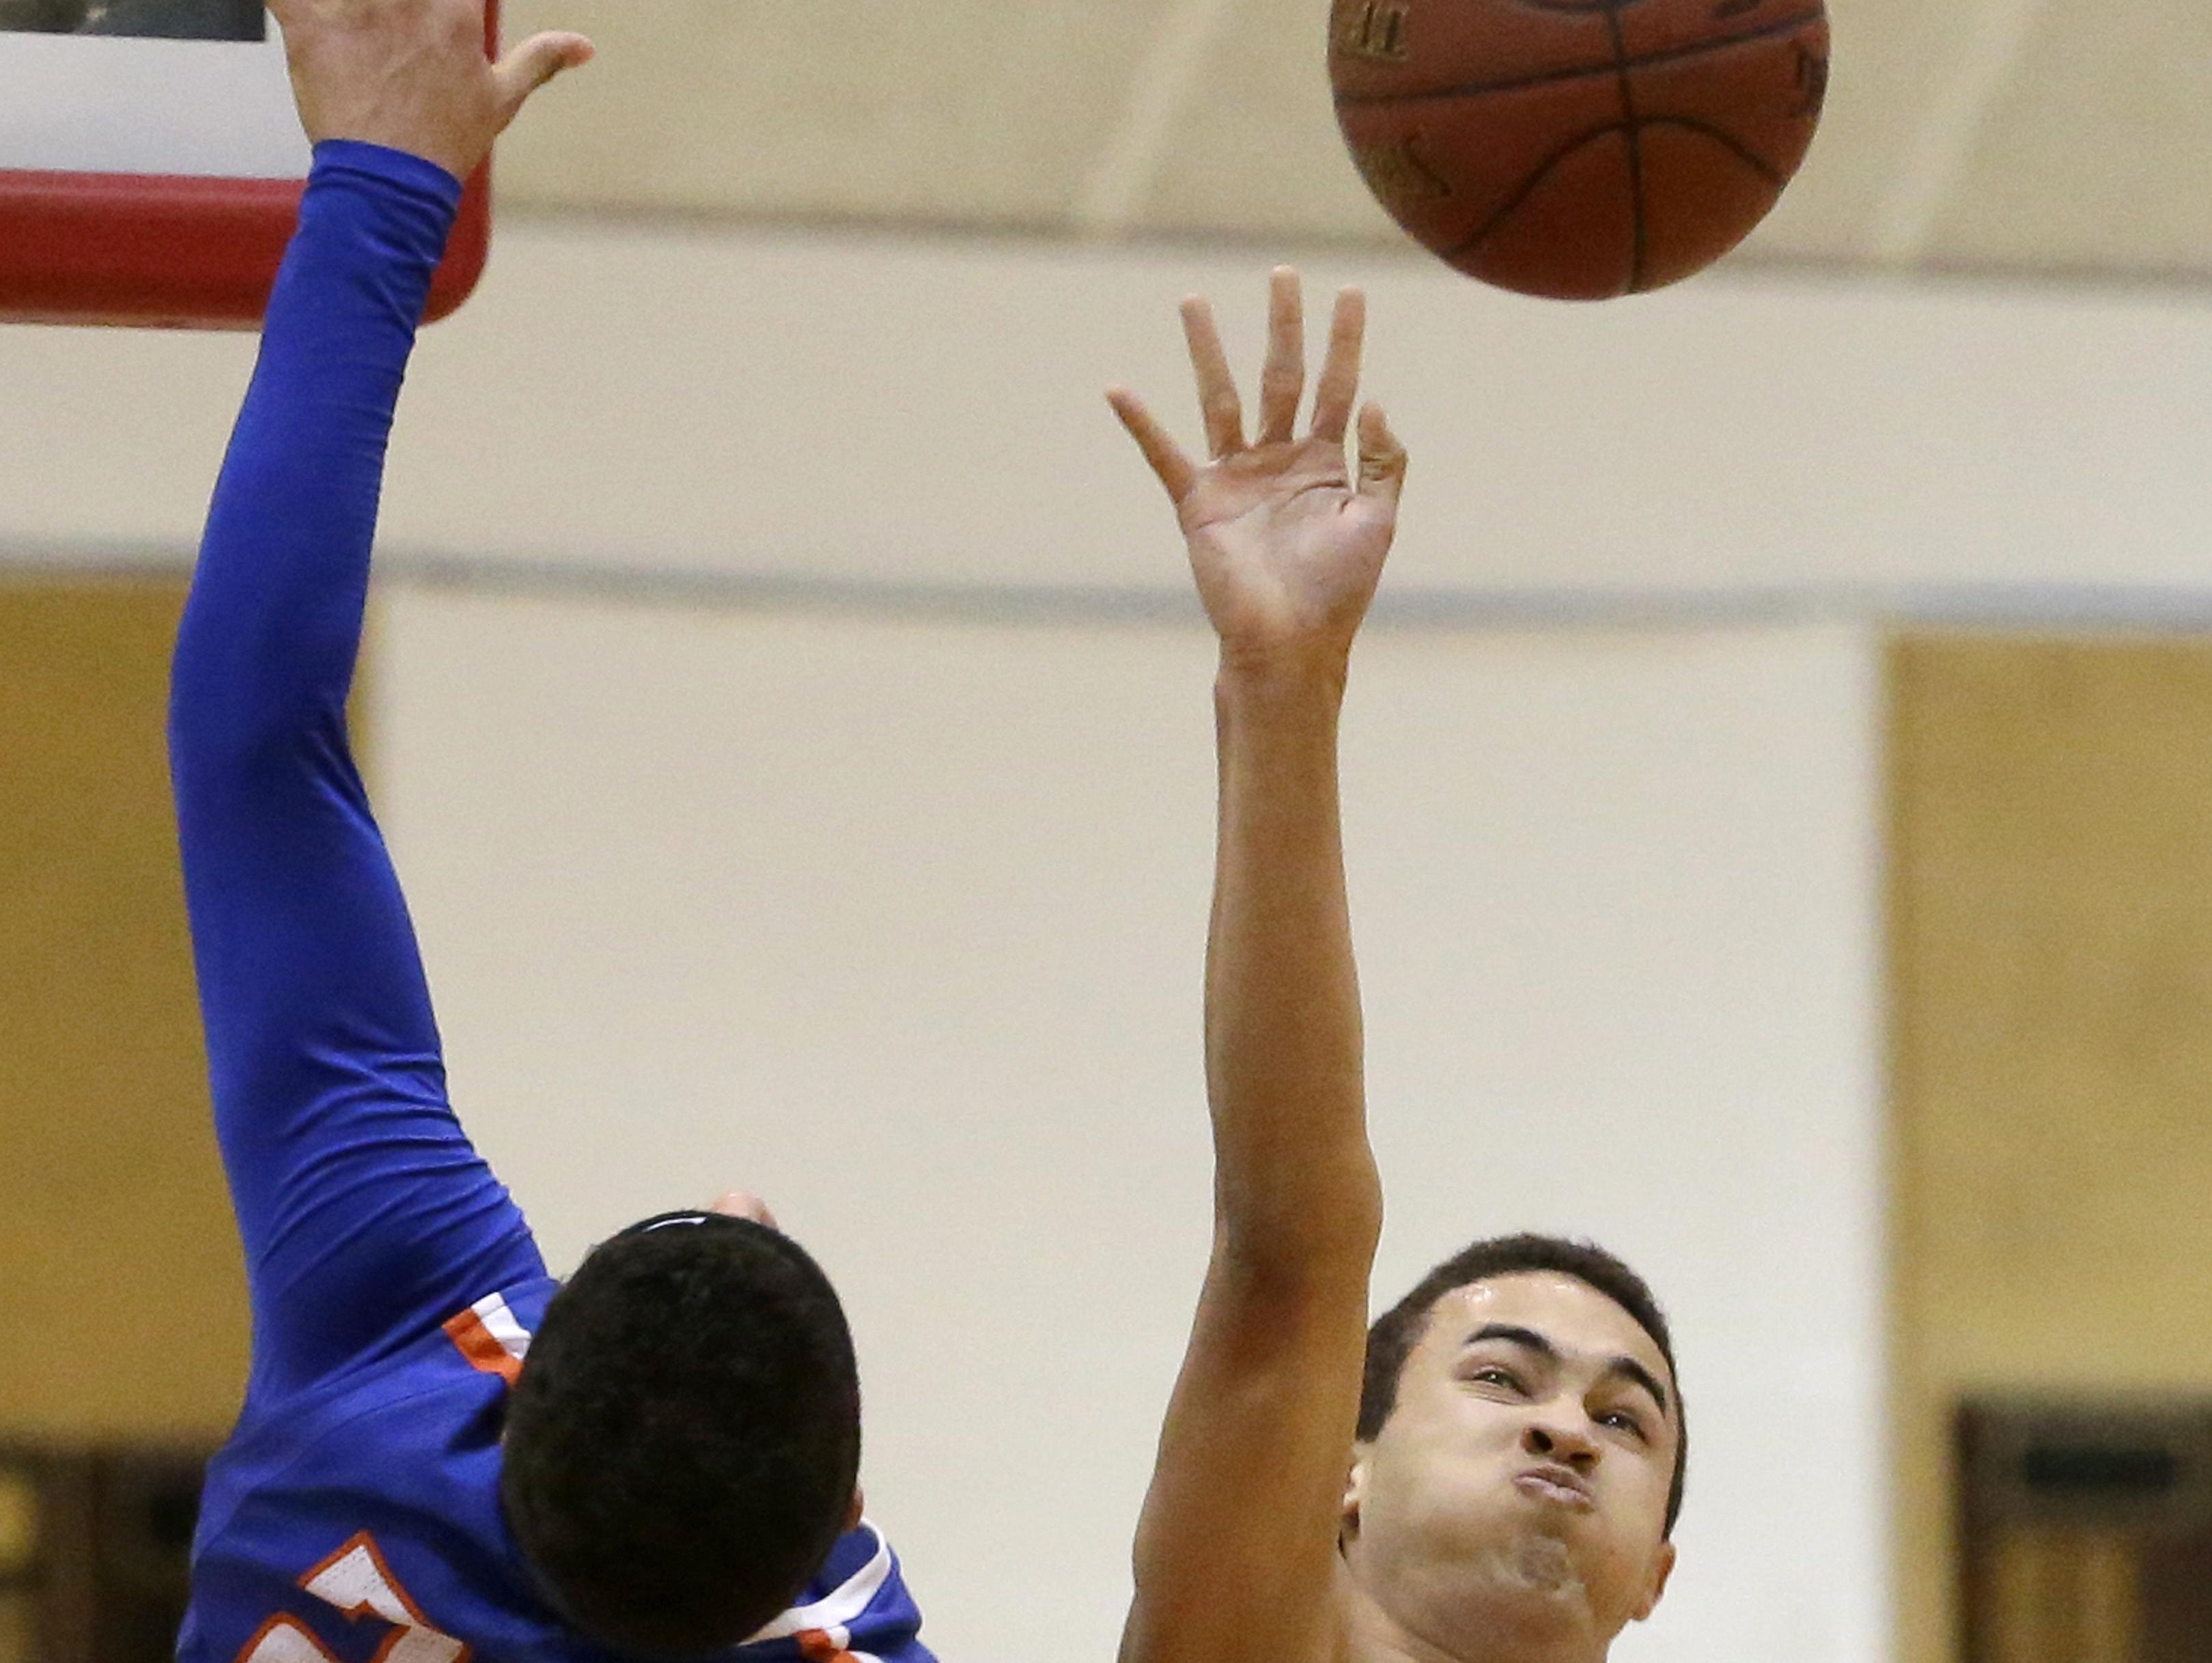 Neenah's Zavier Sims (right) knocks the ball away from Appleton West's Jeason Thomas during Friday's game in Neenah.